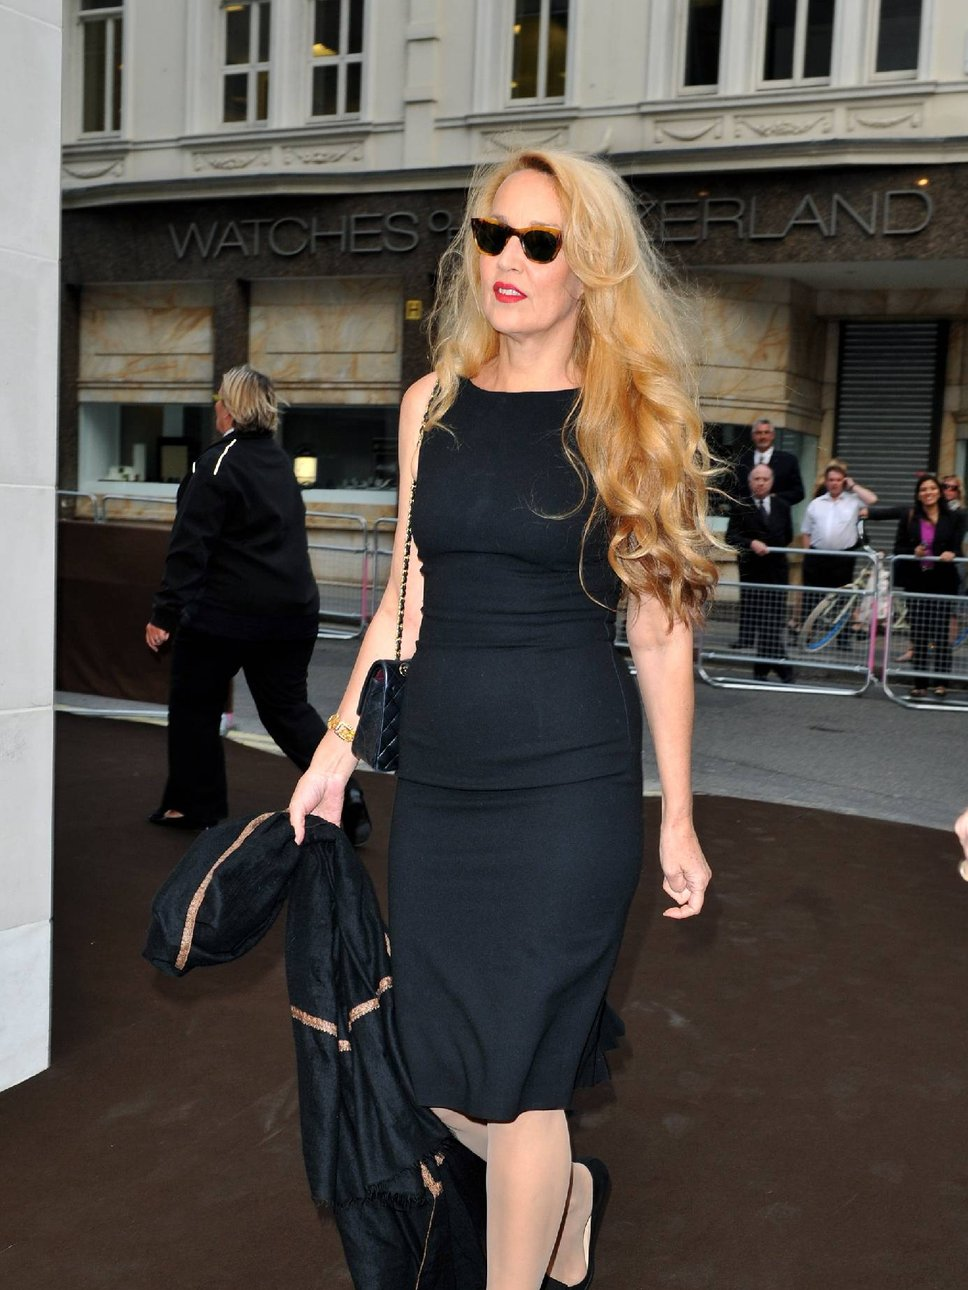 jerry_hall_black dress paparazzi.jpg